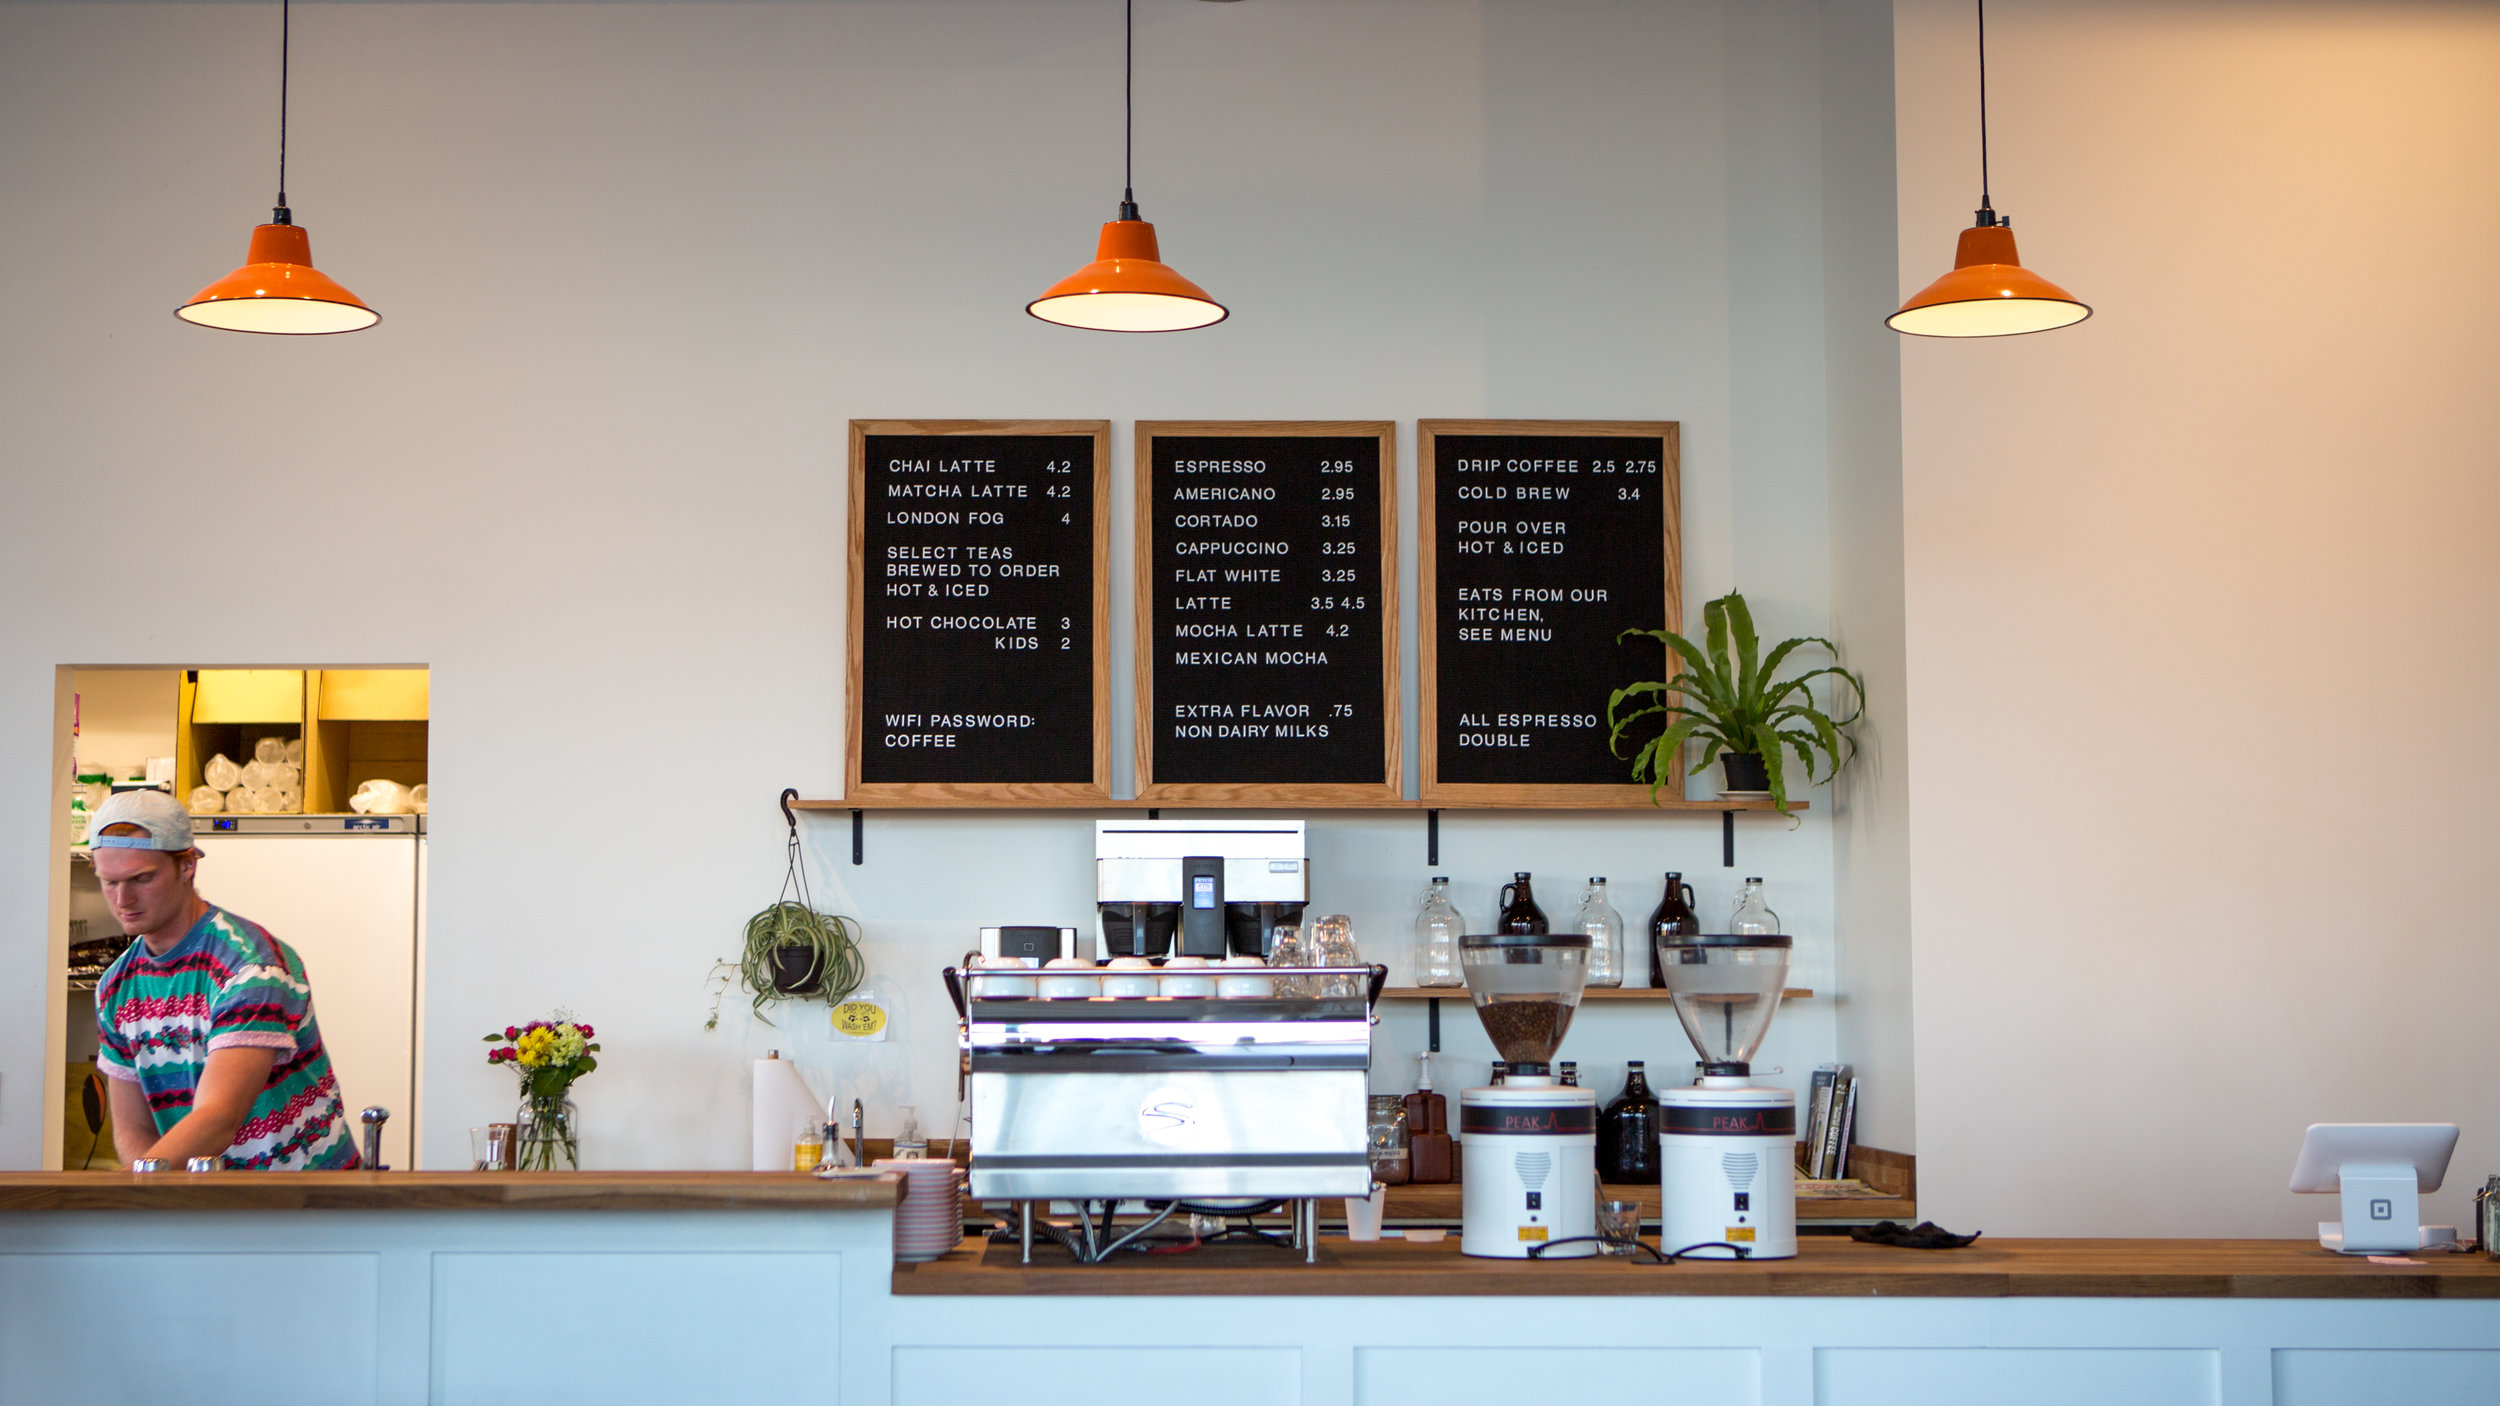 Daily Offerings Coffee Roastery and Cafe 124 Malabu Drive Suite 110 Lexington, Kentucky